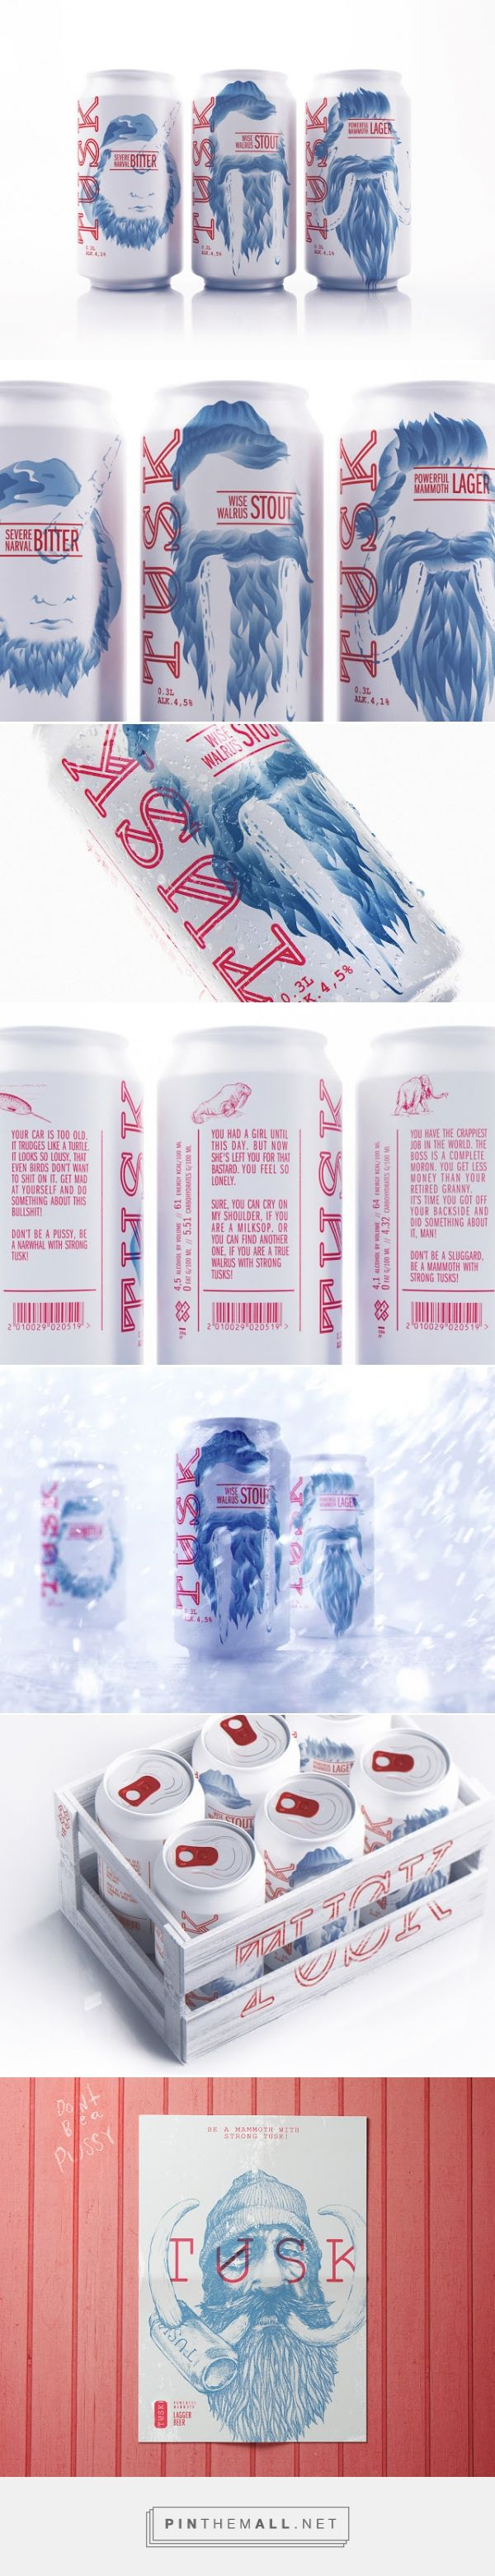 Tusk Craft Beer (Concept)